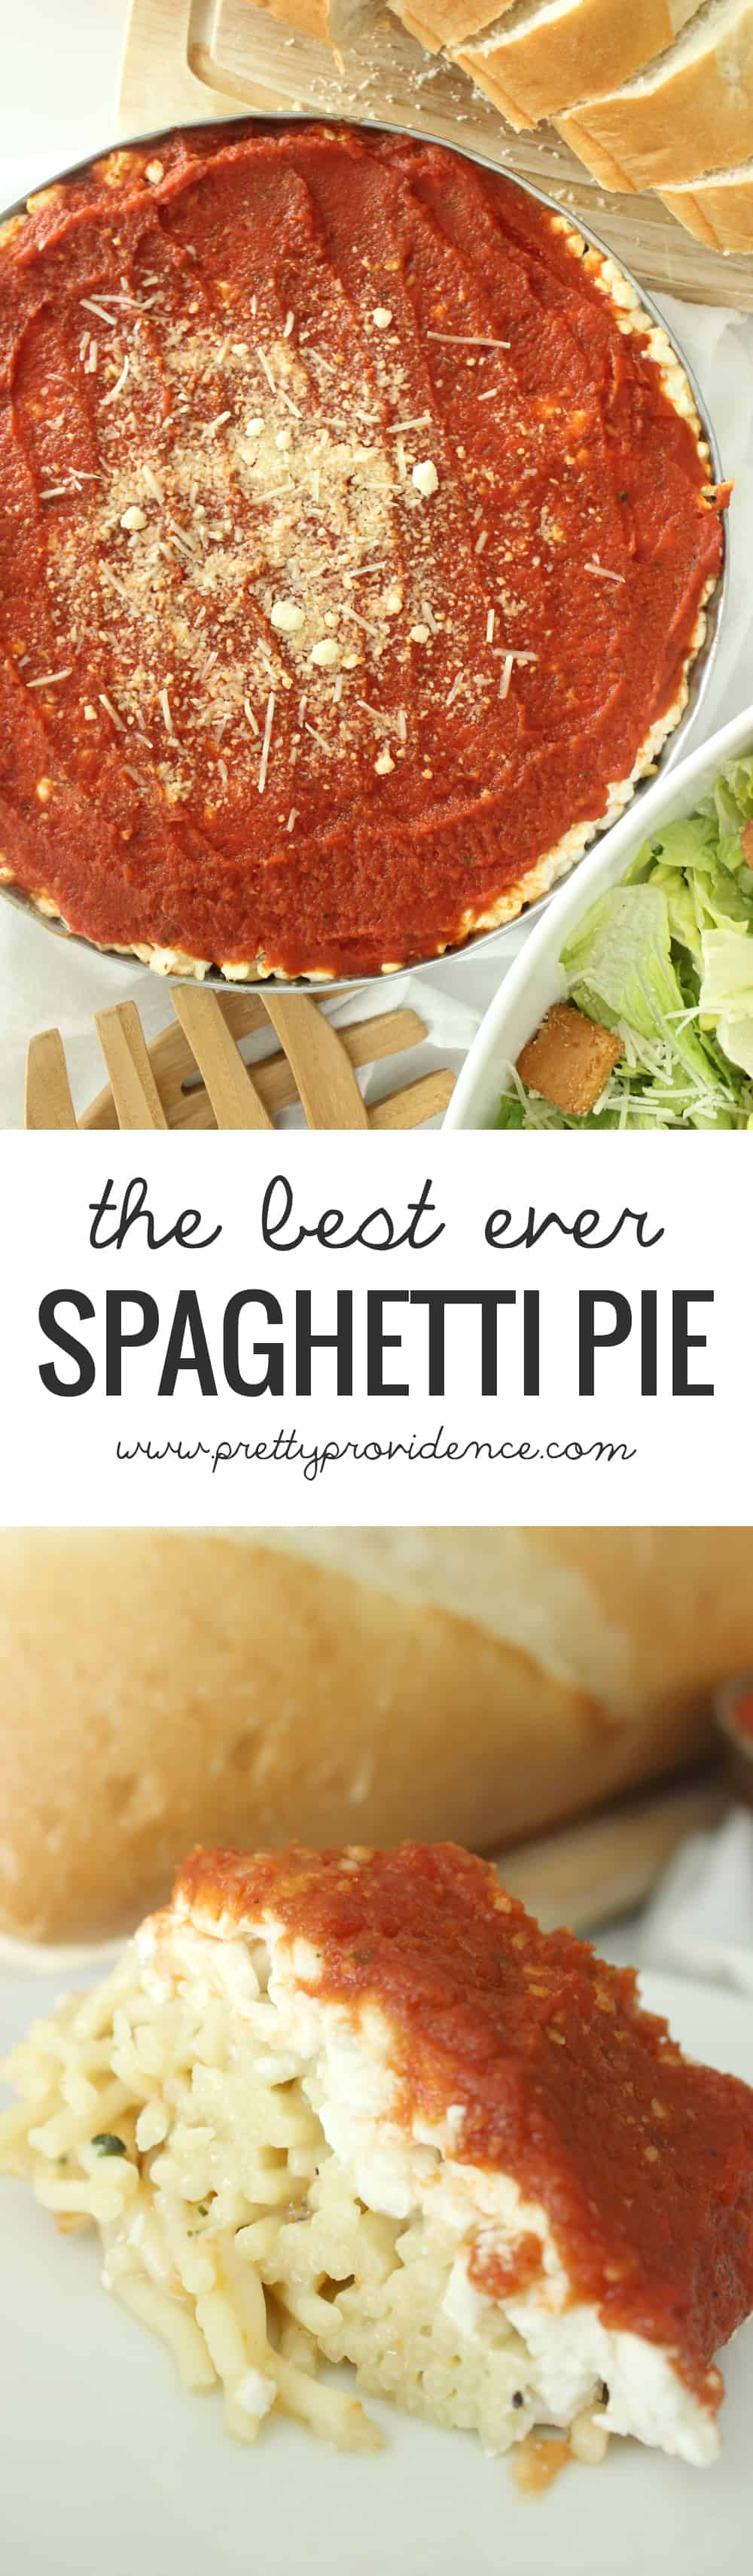 Literally one of the best frugal meals EVER! Quick to throw together, super filling, and even the pickiest of eaters love it!